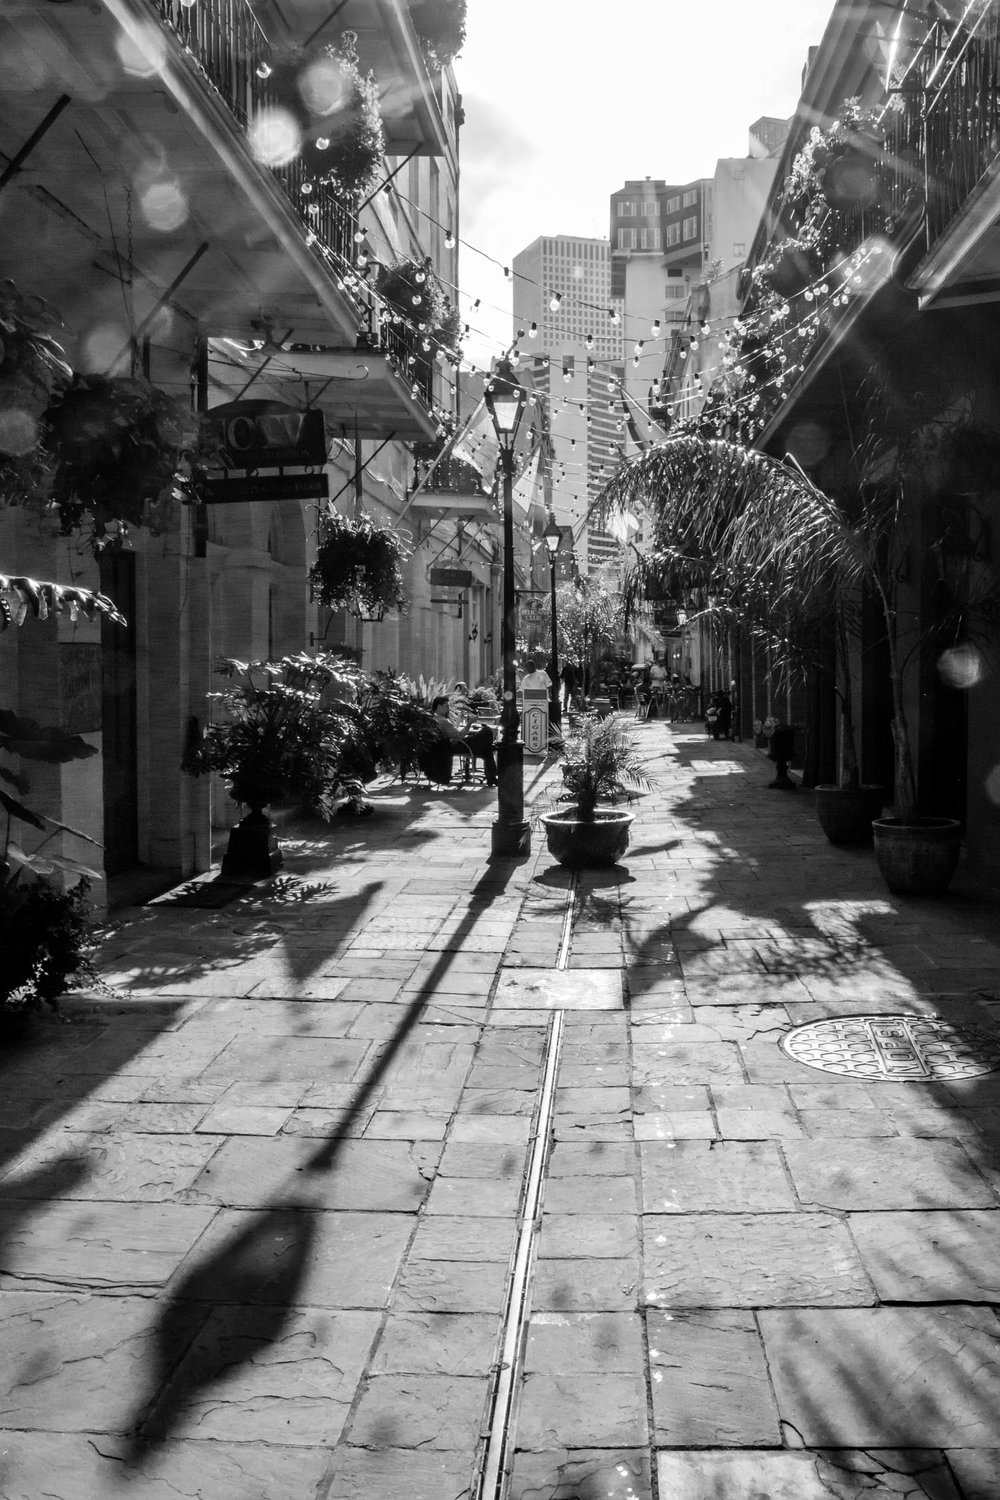 The lamp post's shadow takes the viewer into this alley in the French Quarter.